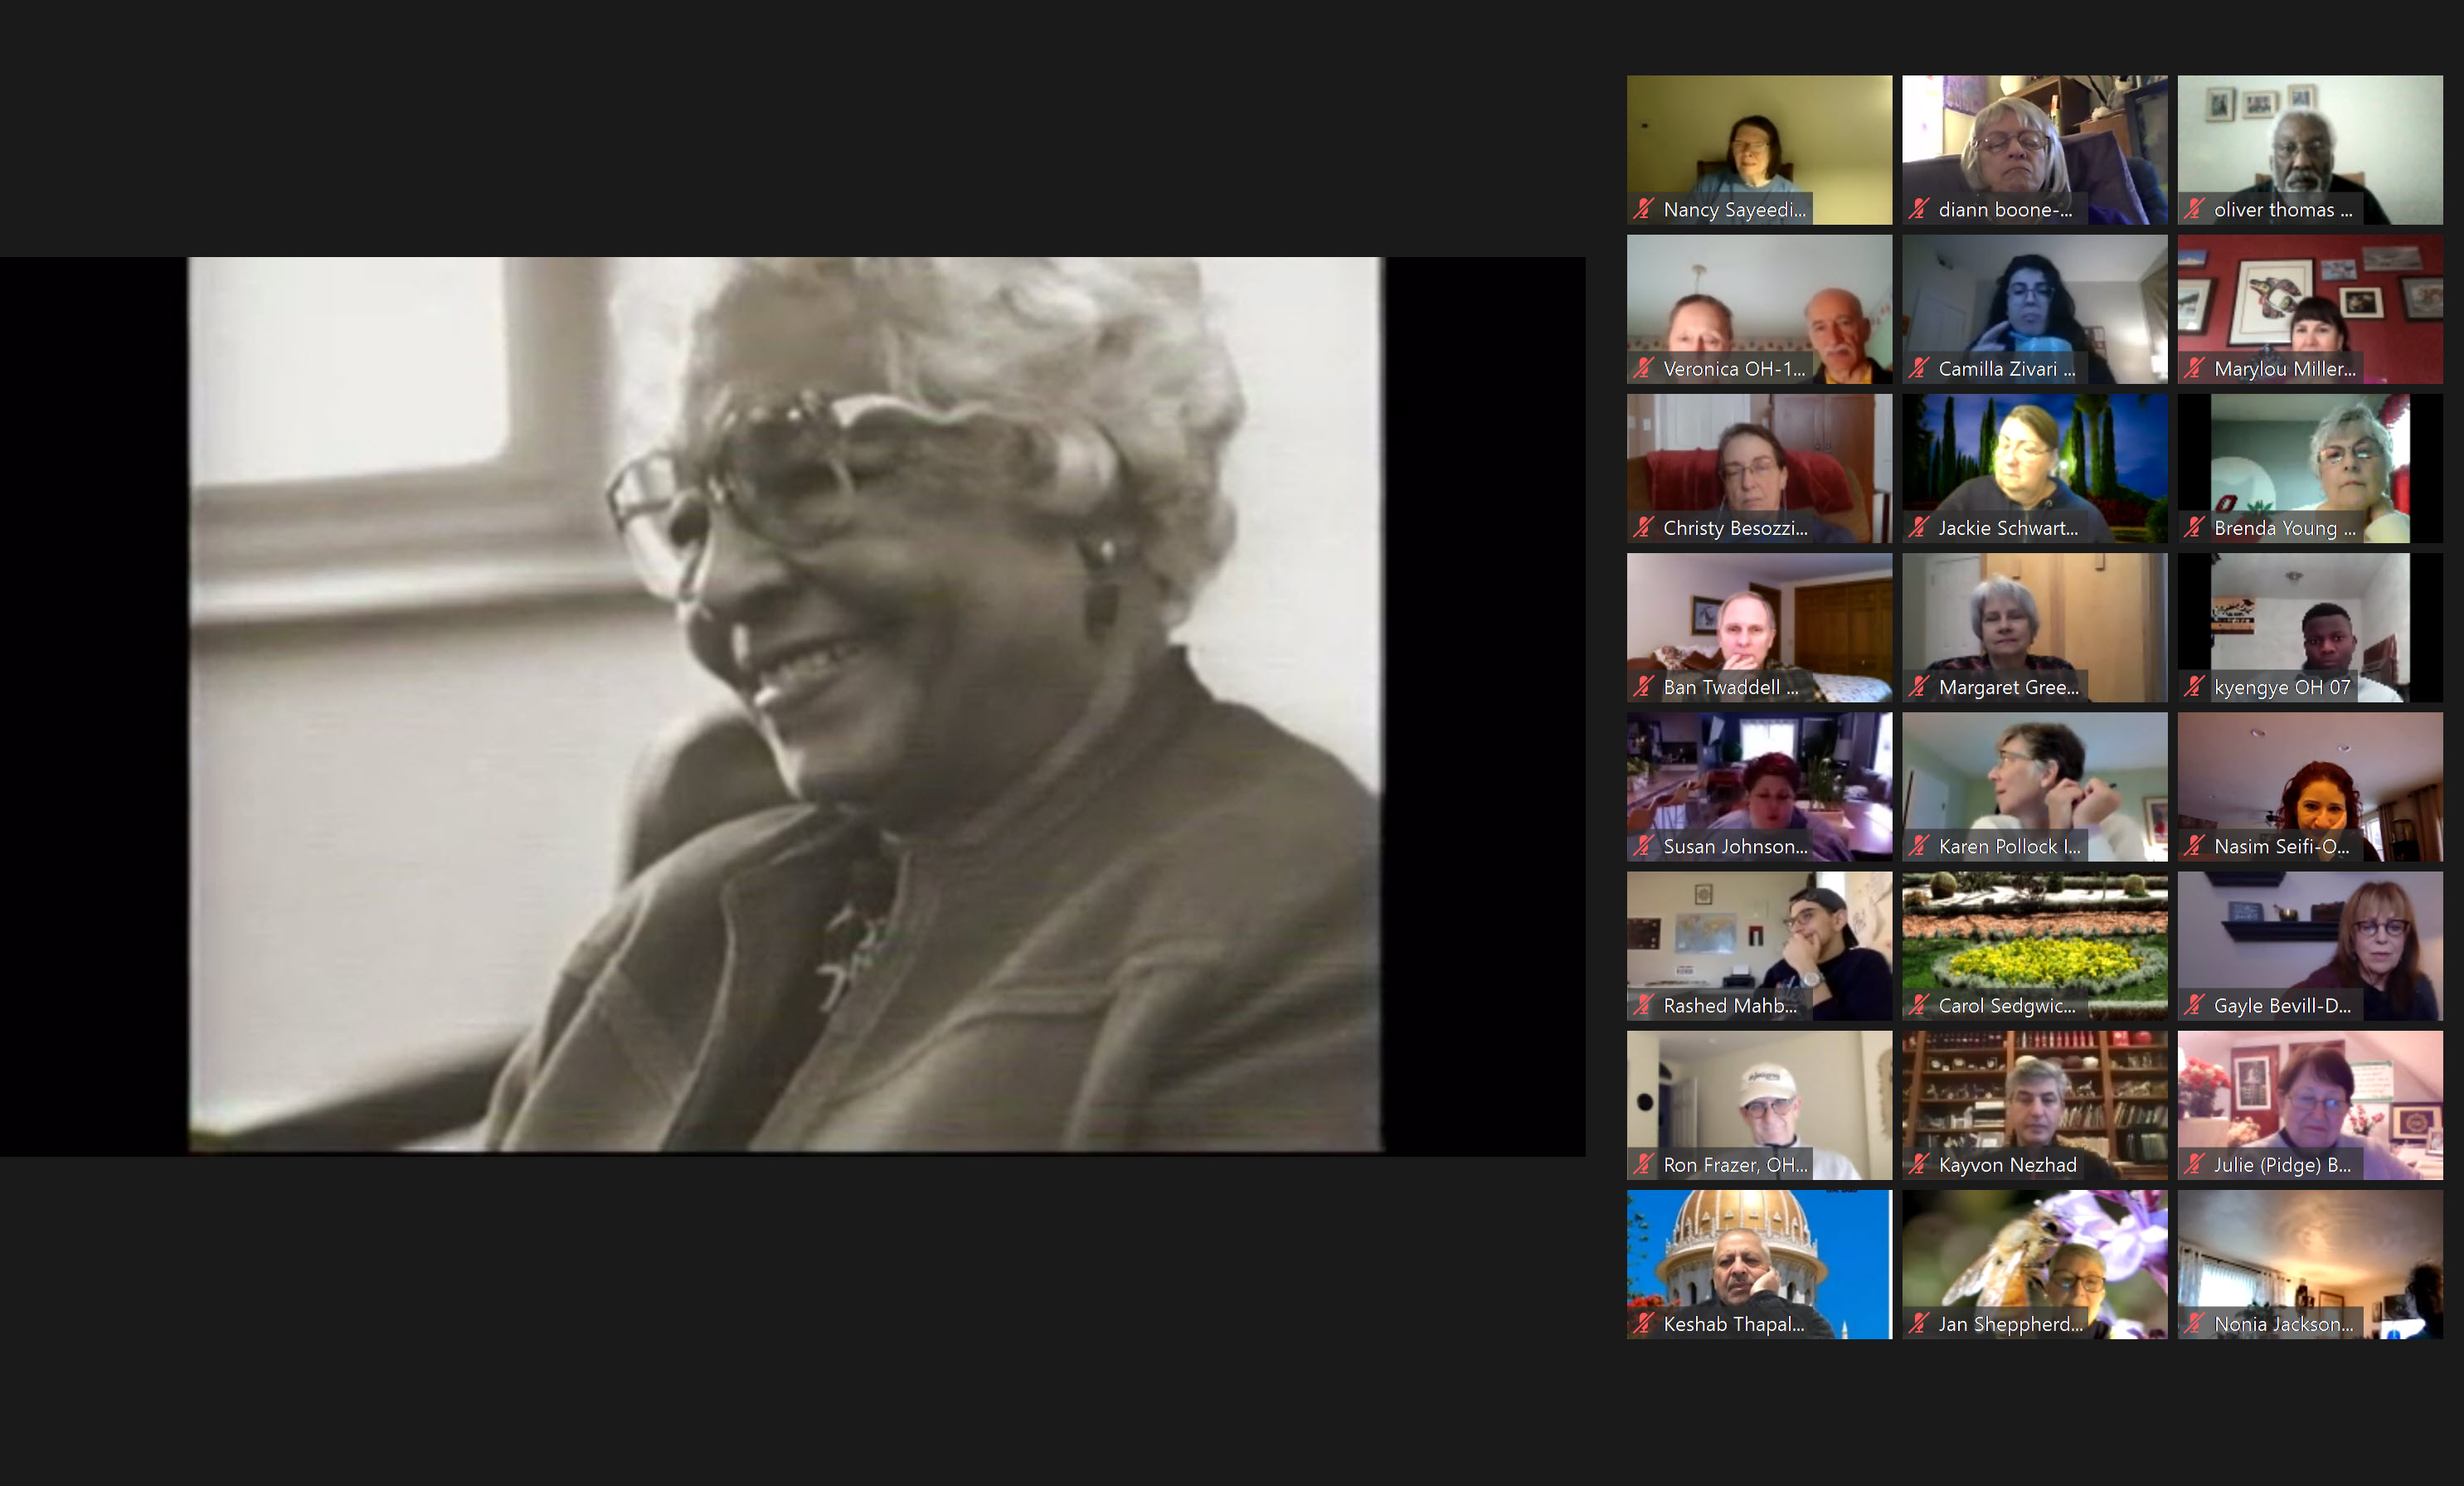 On a video call, about two dozen people look at an image of an elderly woman.